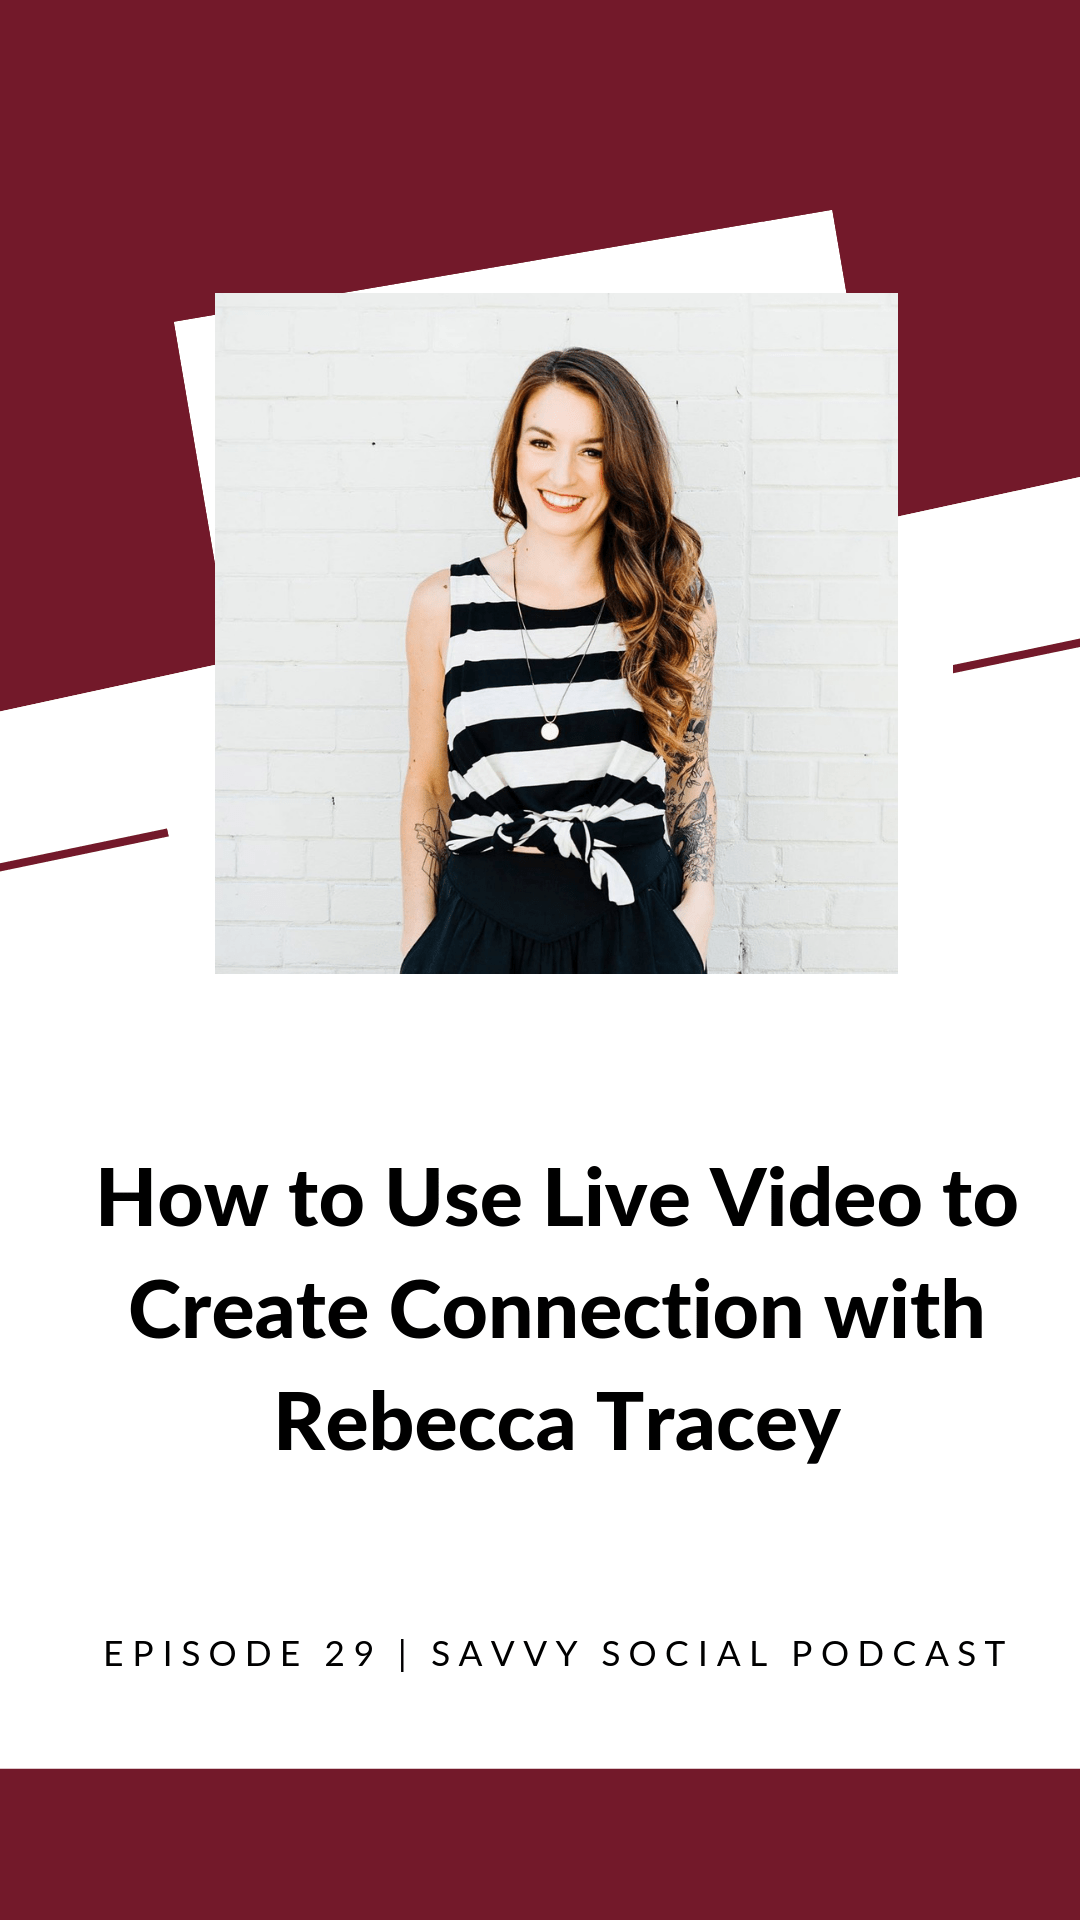 Even though we live in a digital world, we often forget how to connect with others on an individual level. Creating genuine connections is crucial to having a successful business, so today Rebecca Tracey is here to share how to use live videos to build a stronger connection with your audience.